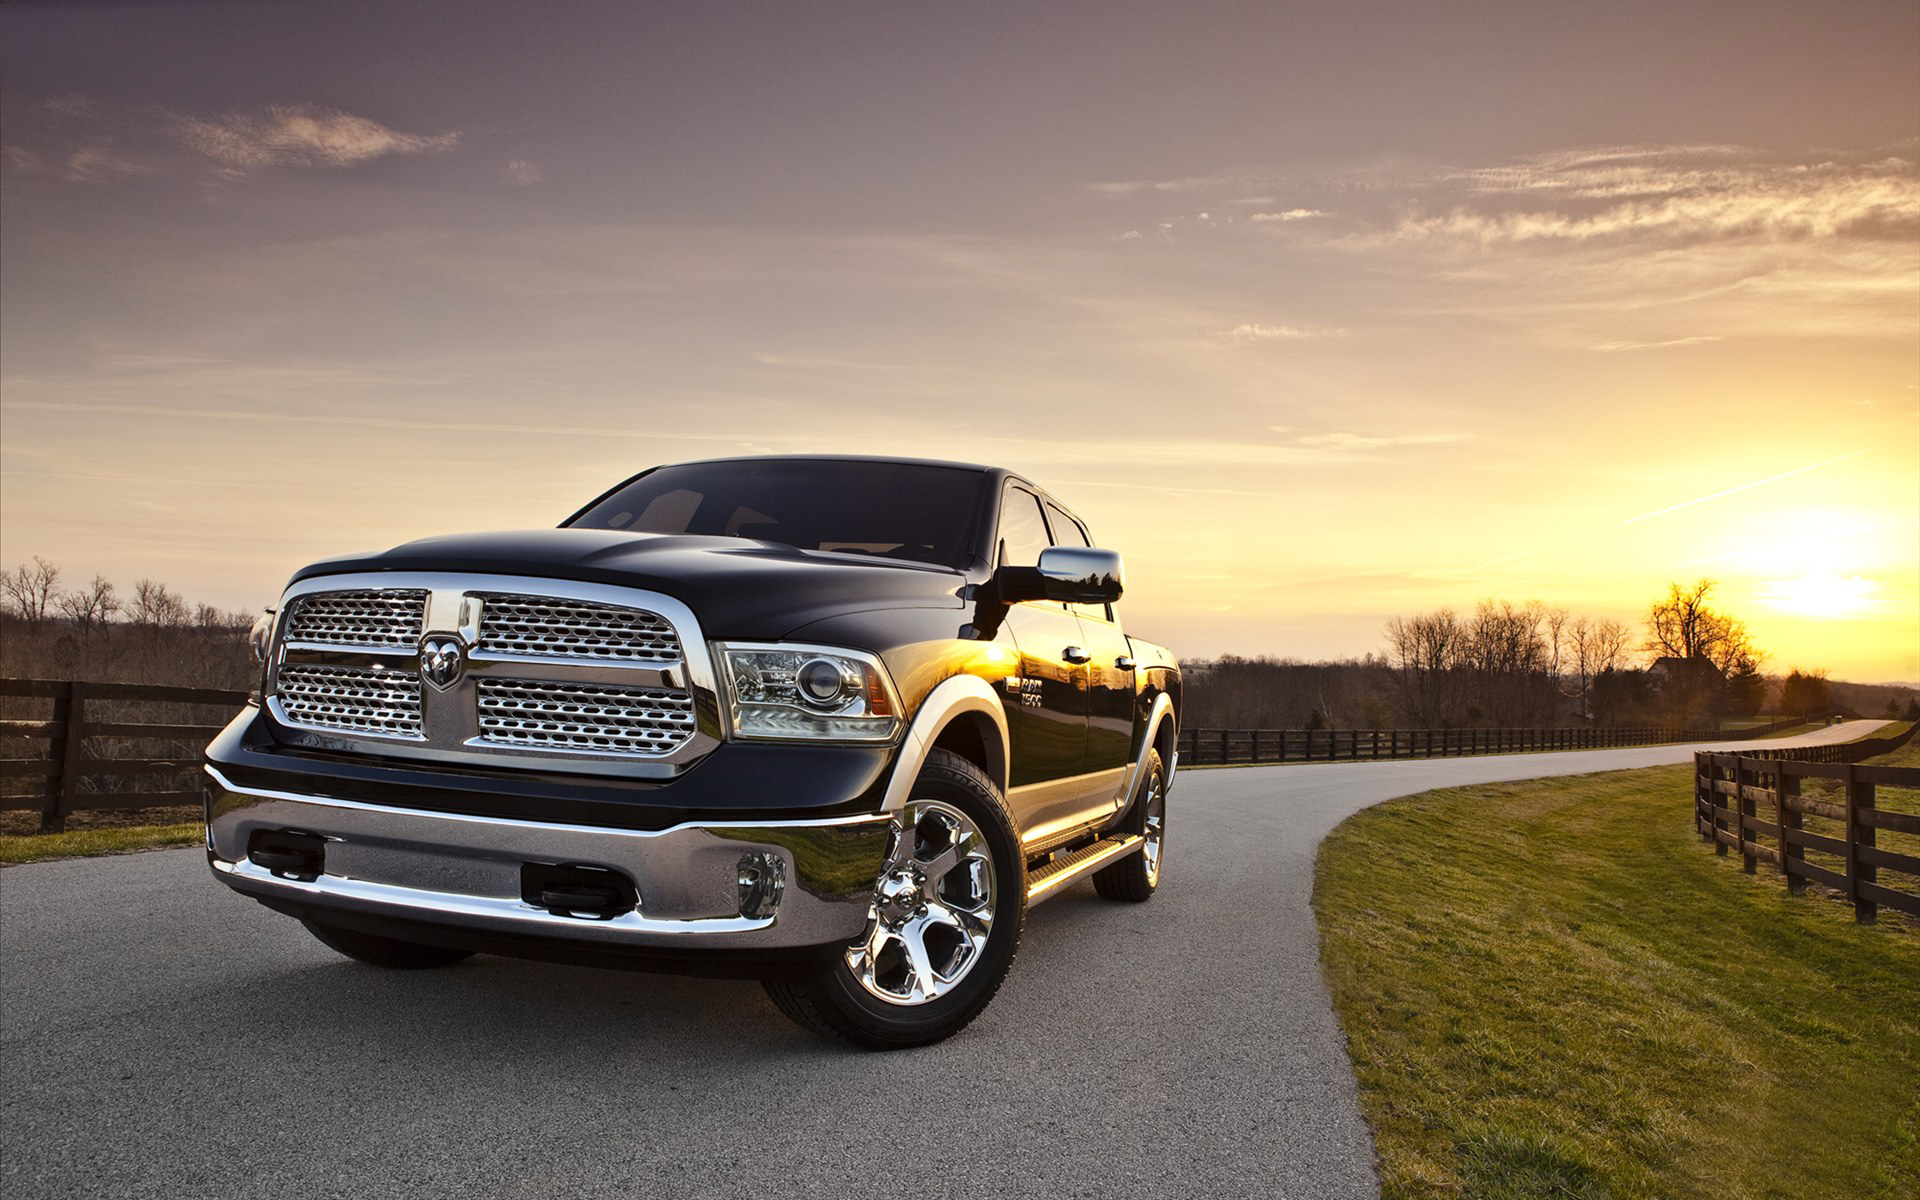 2013 Dodge Ram 1500 Wallpaper HD Car Wallpapers 1920x1200